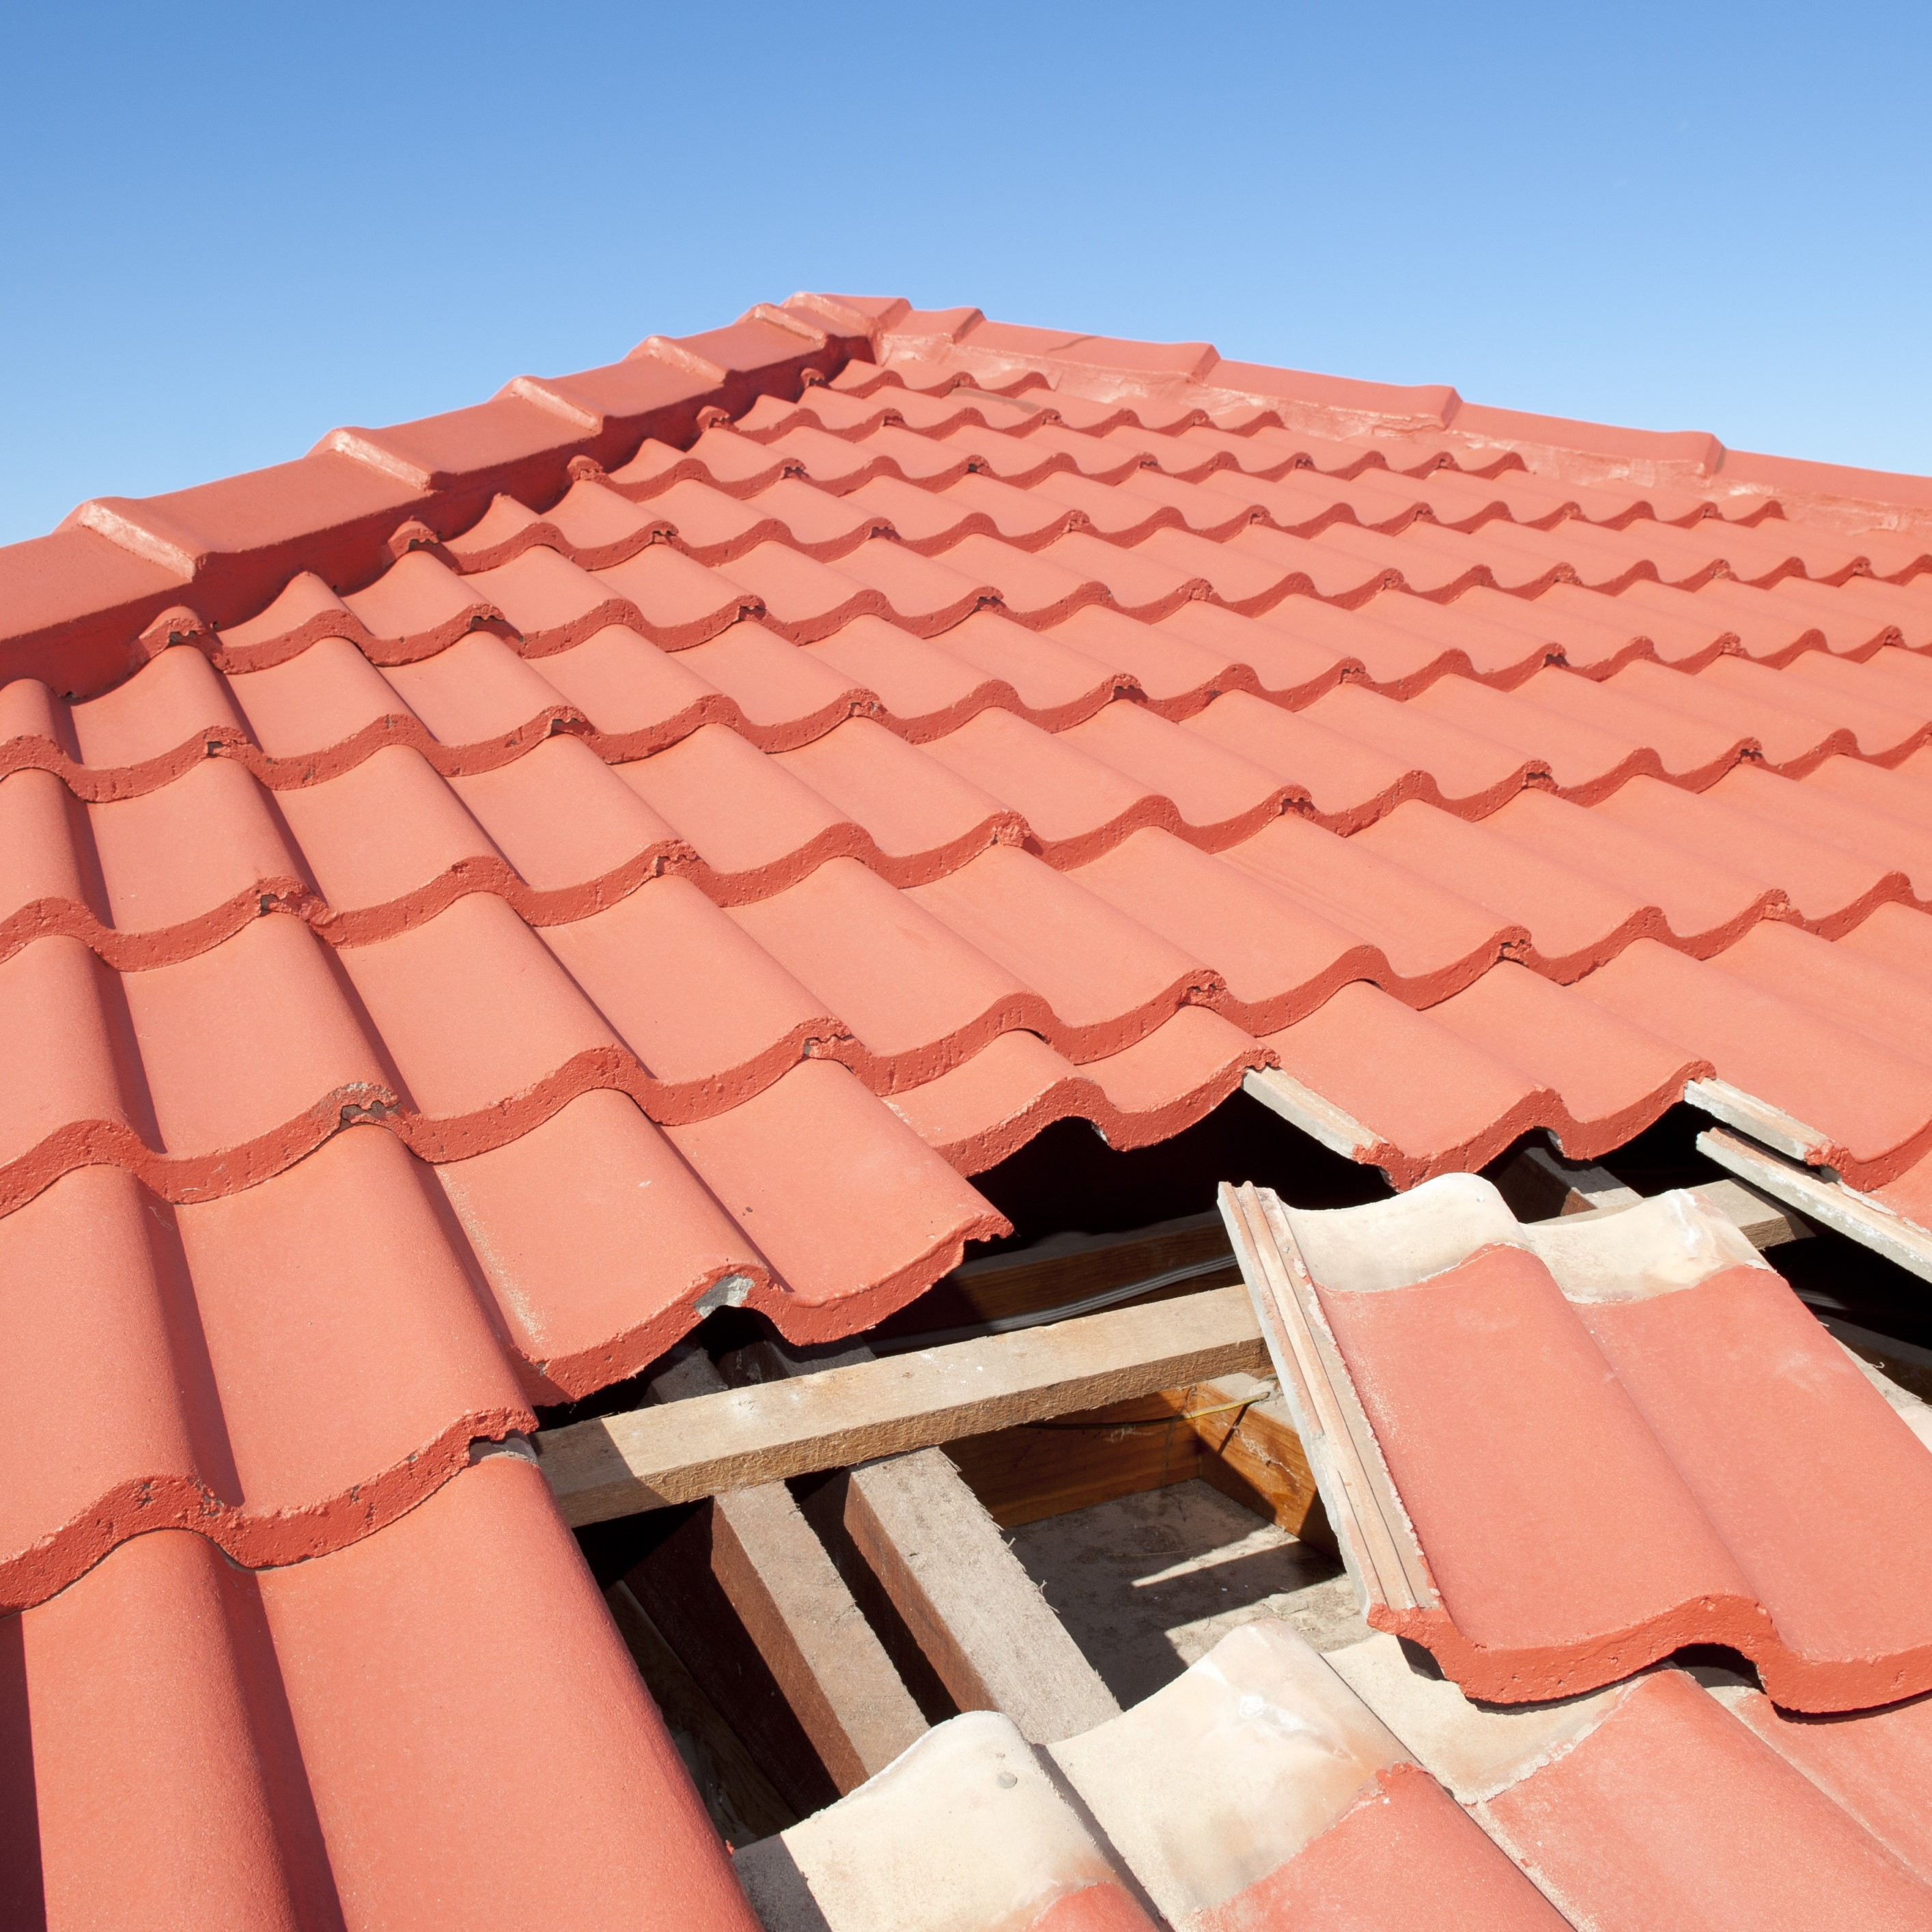 A tile roof that is in need of repairs.